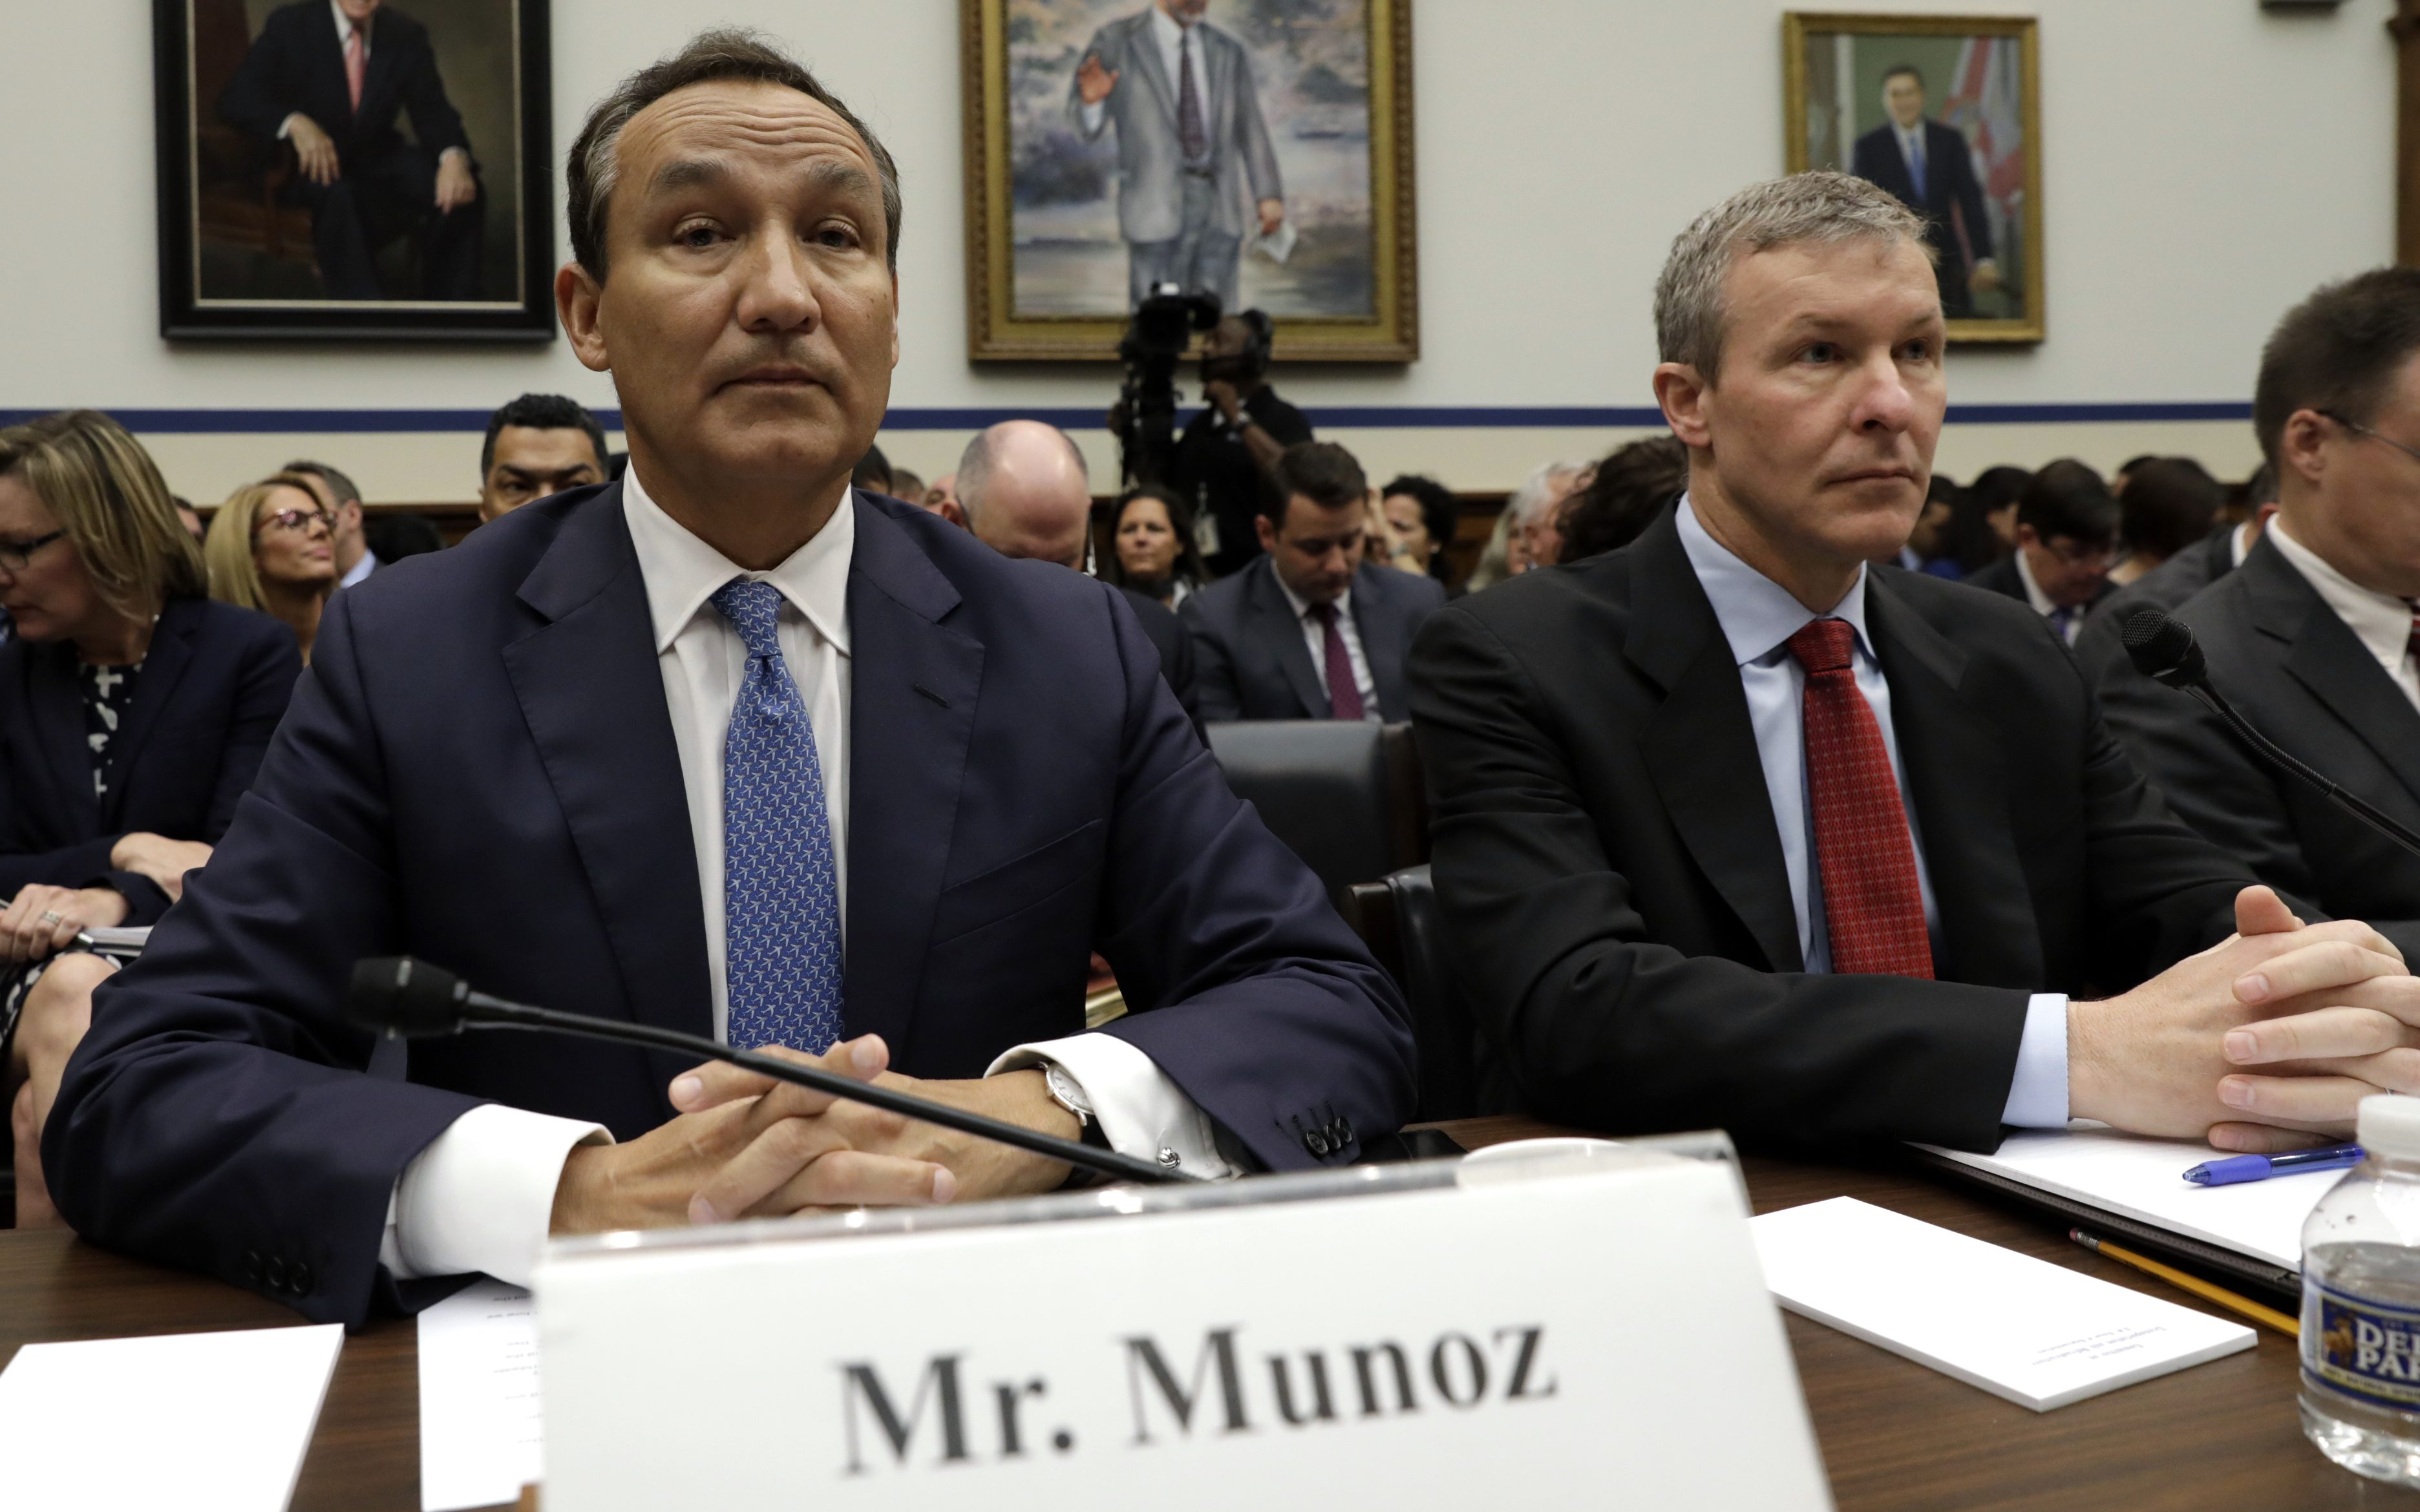 """United Airlines CEO Oscar Munoz (L) and UAL President Scott Kirby prepare to testify at a House Transportation and Infrastructure Committee hearing on """"Oversight of U.S. Airline Customer Service,"""" in the aftermath of the forced removal on April 9 of a passenger from a UAL Chicago flight, on Capitol Hill in Washington, U.S., May 2, 2017. REUTERS/Kevin Lamarque - HP1ED5211NJ53"""